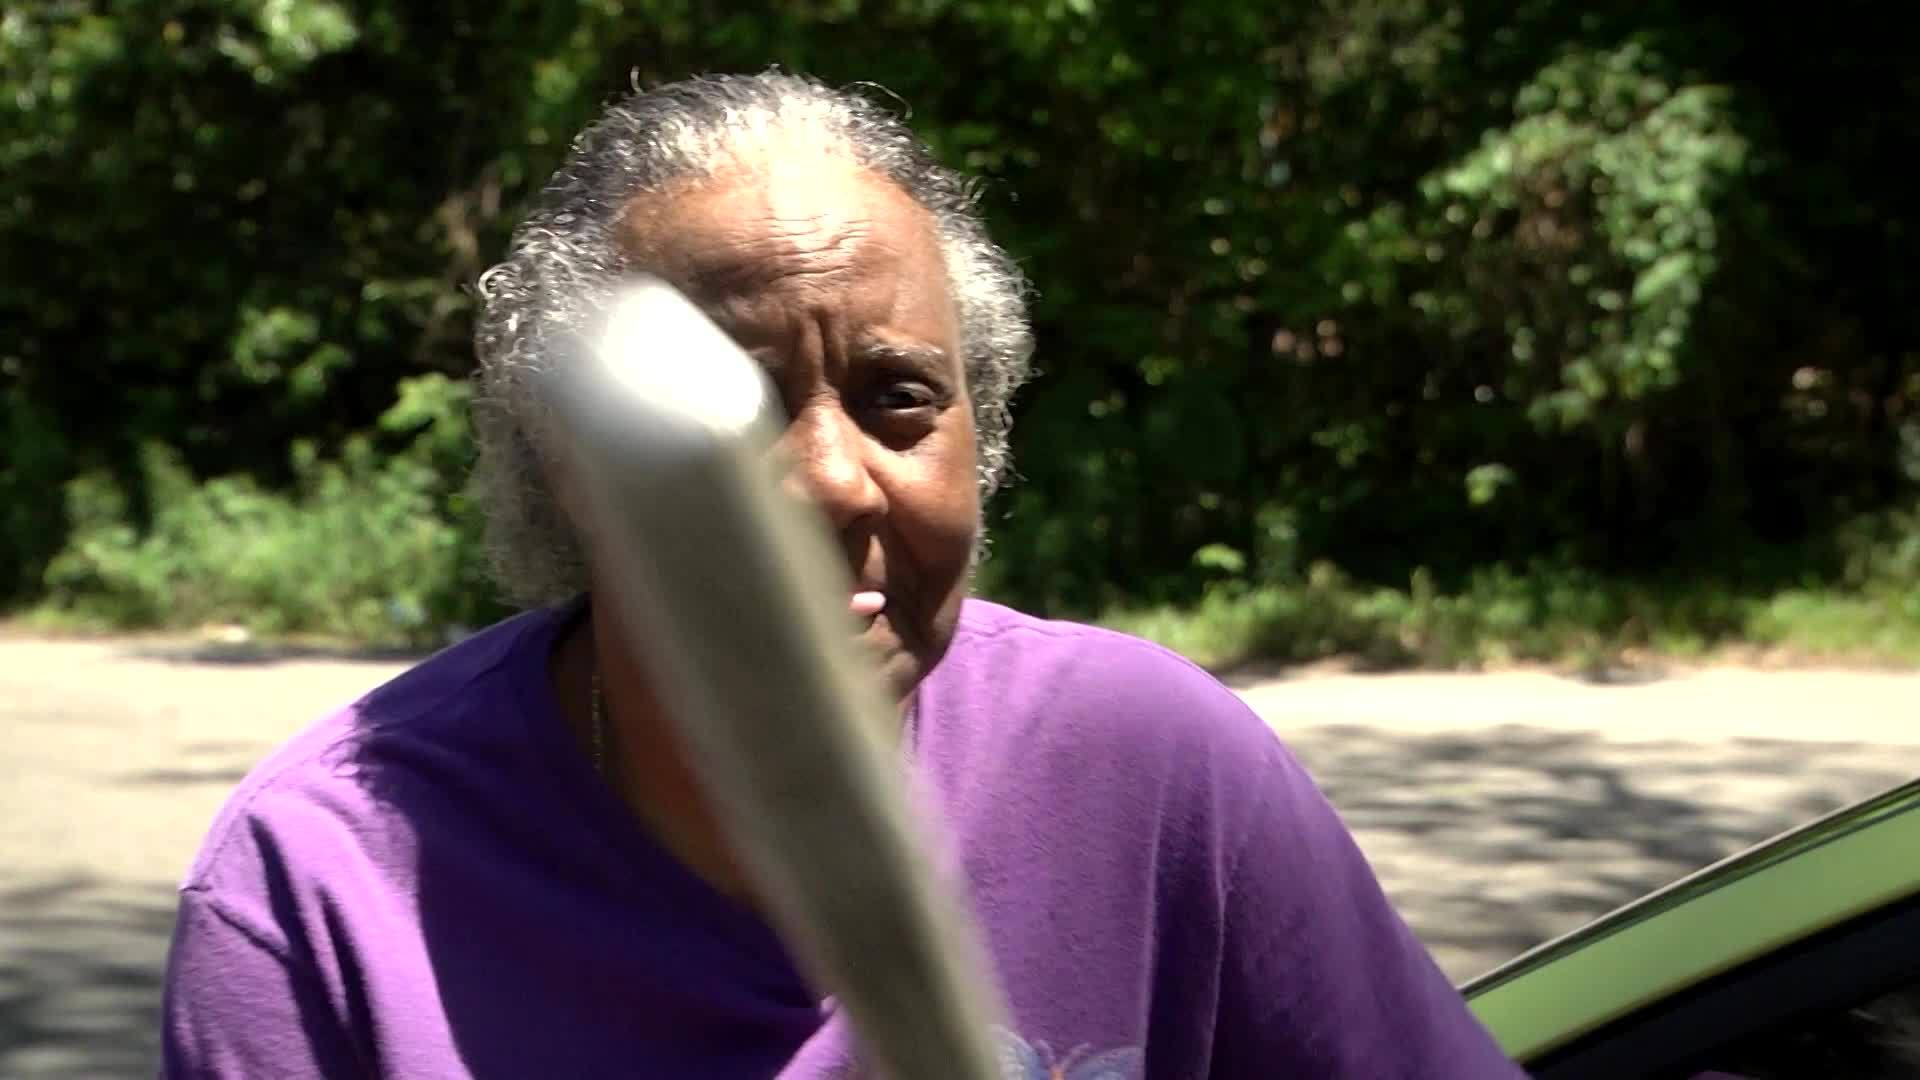 Grandma fights off have naked burglary suspect with bat